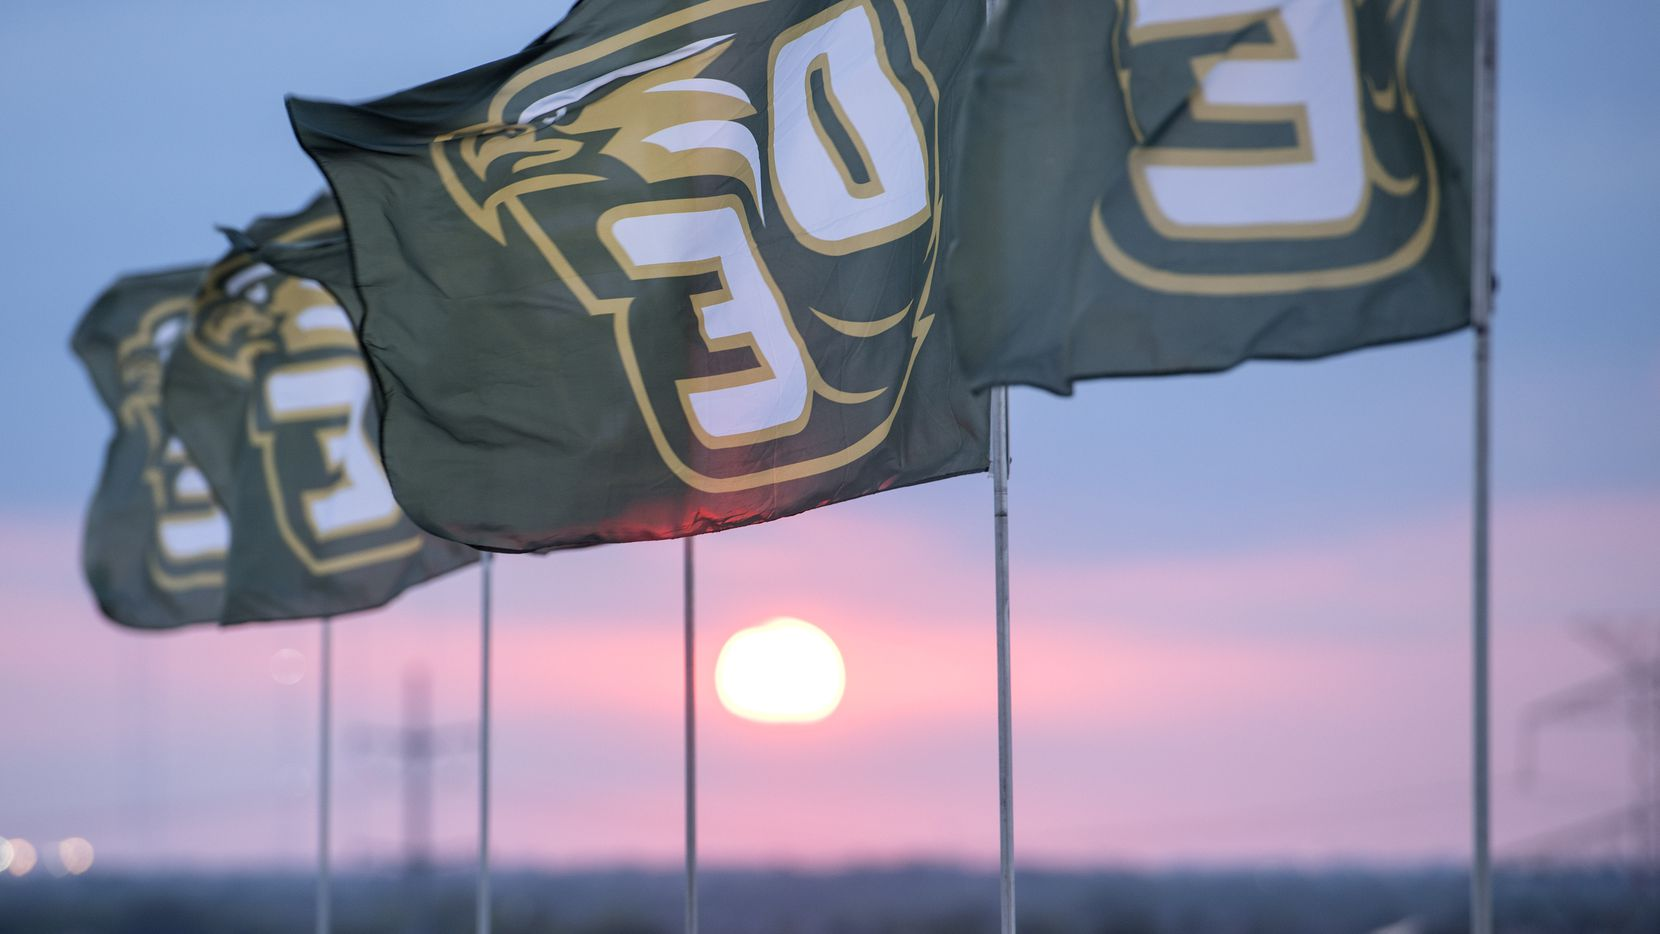 DeSoto flags fly as the sun sets before the start of a high school football game against Denton Guyer at Eagle Stadium in DeSoto, Texas, Friday, September 2, 2016. (Jeffrey McWhorter/Special Contributor)